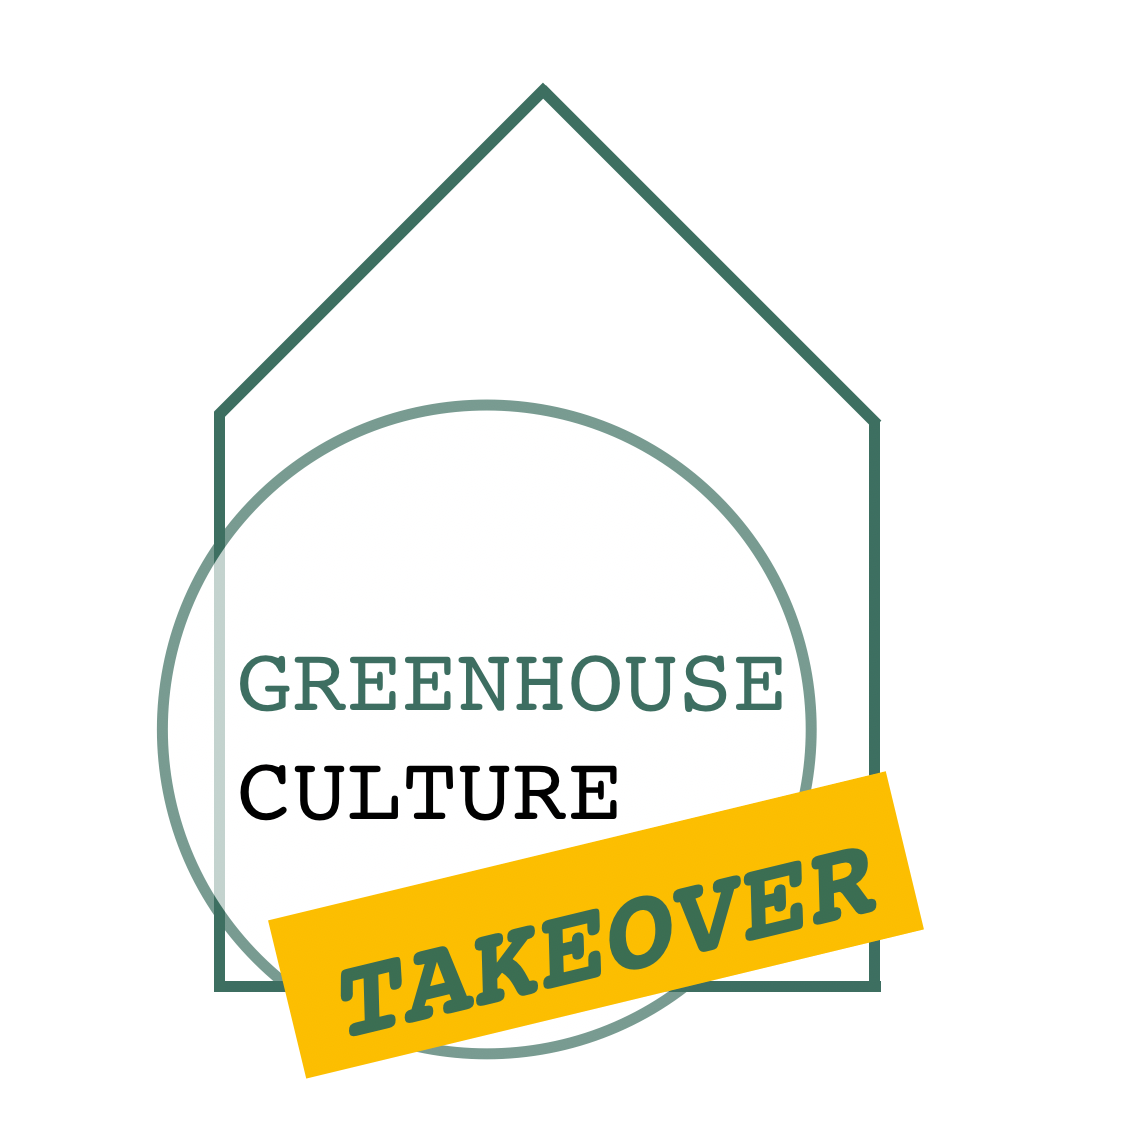 Greenhouse Culture TAKEOVER